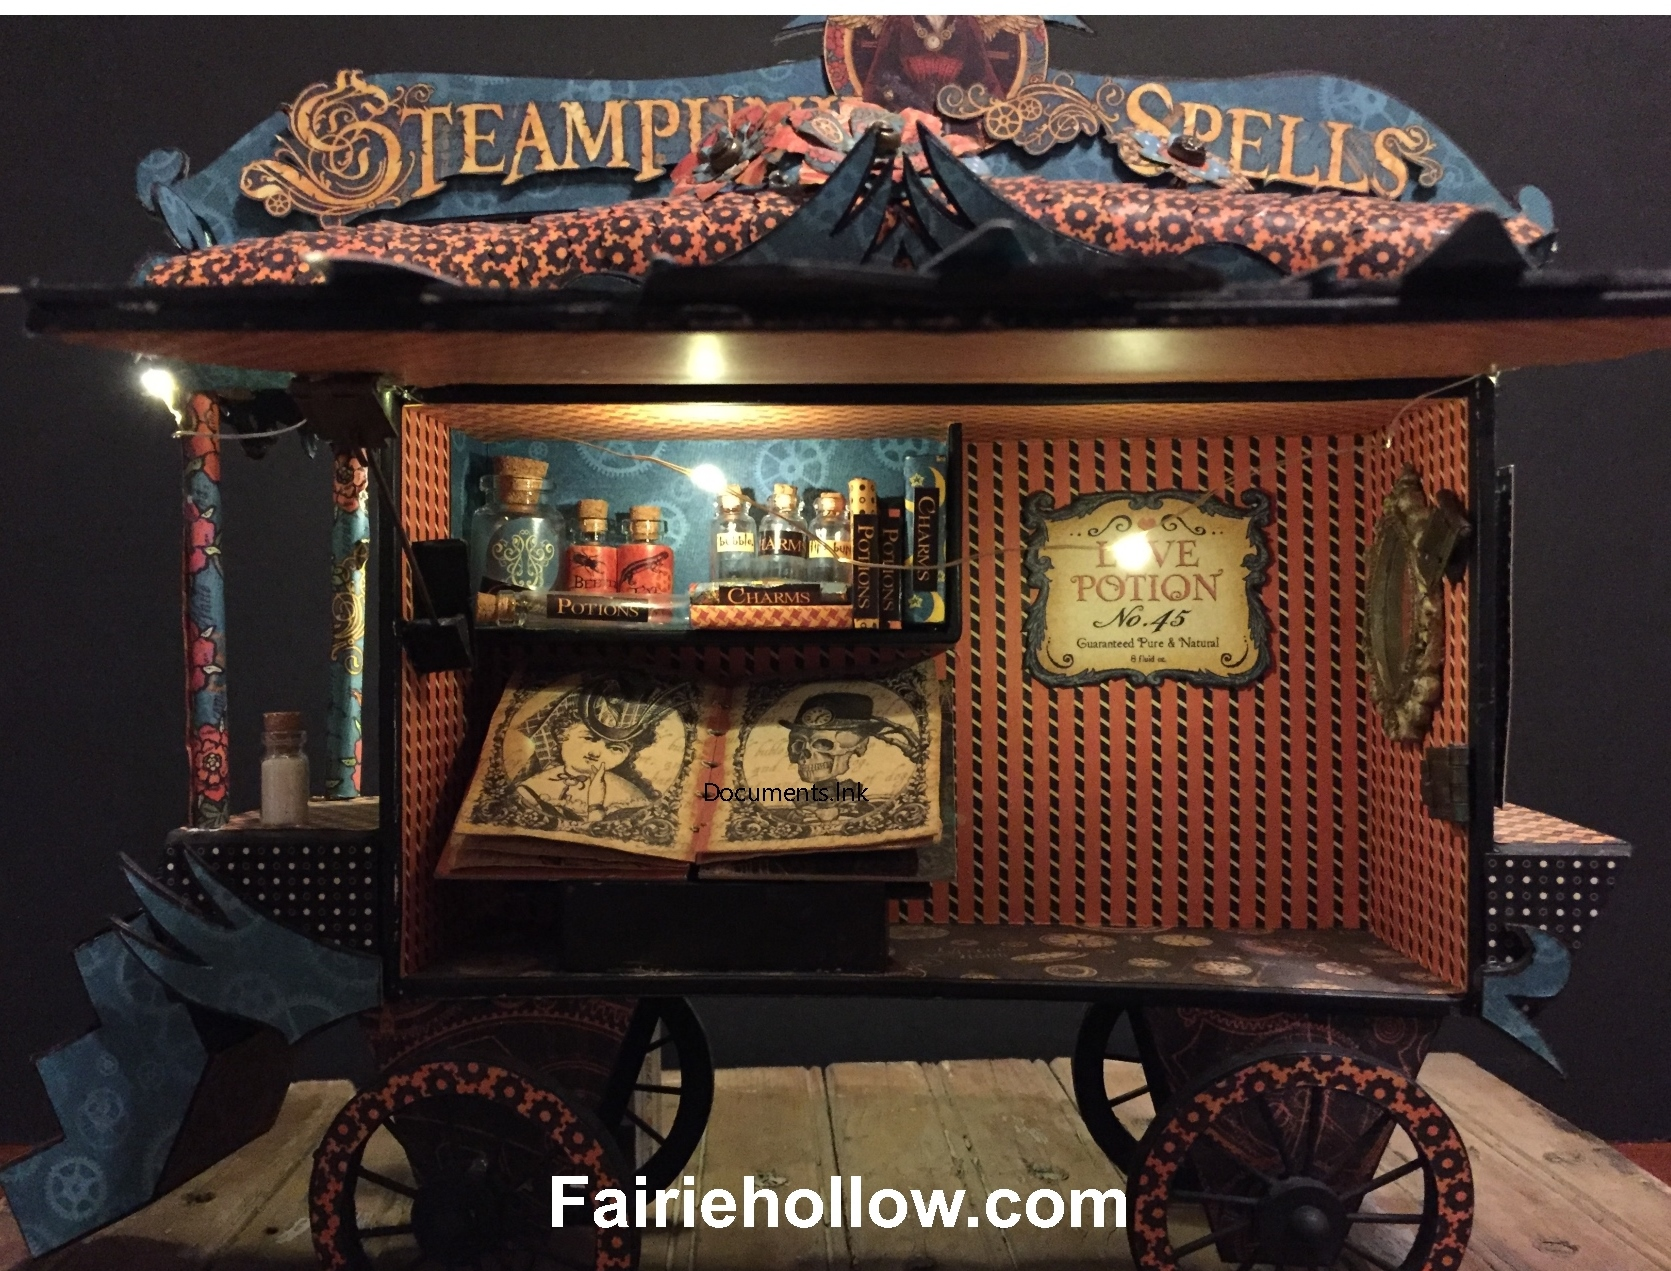 This fairies steampunk caravan is made from a cigar box and covered with papers from Graphic 45. fairiehollow.com